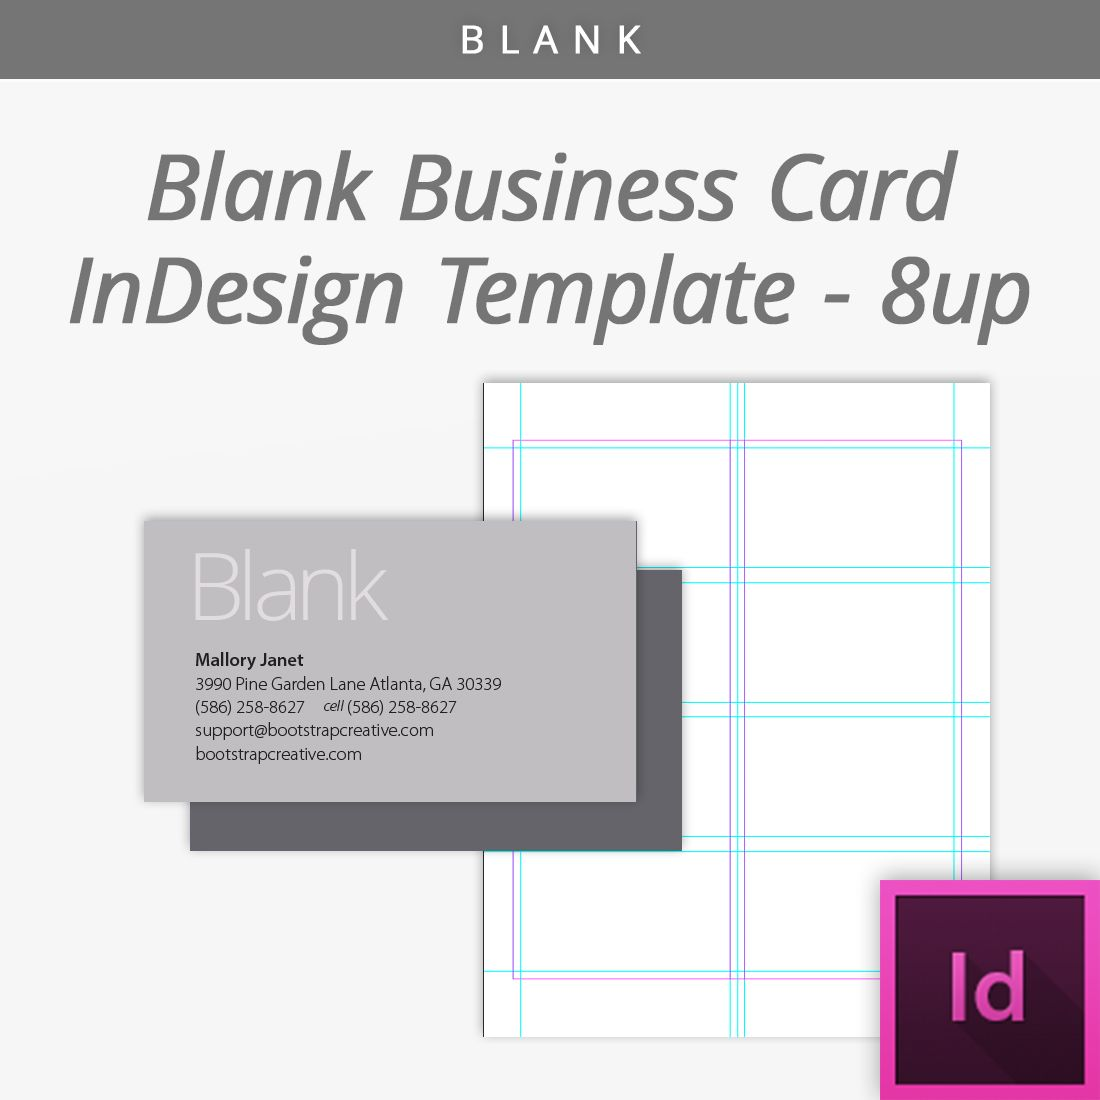 Blank InDesign Business Card Template Up Free Download - Business card indesign template